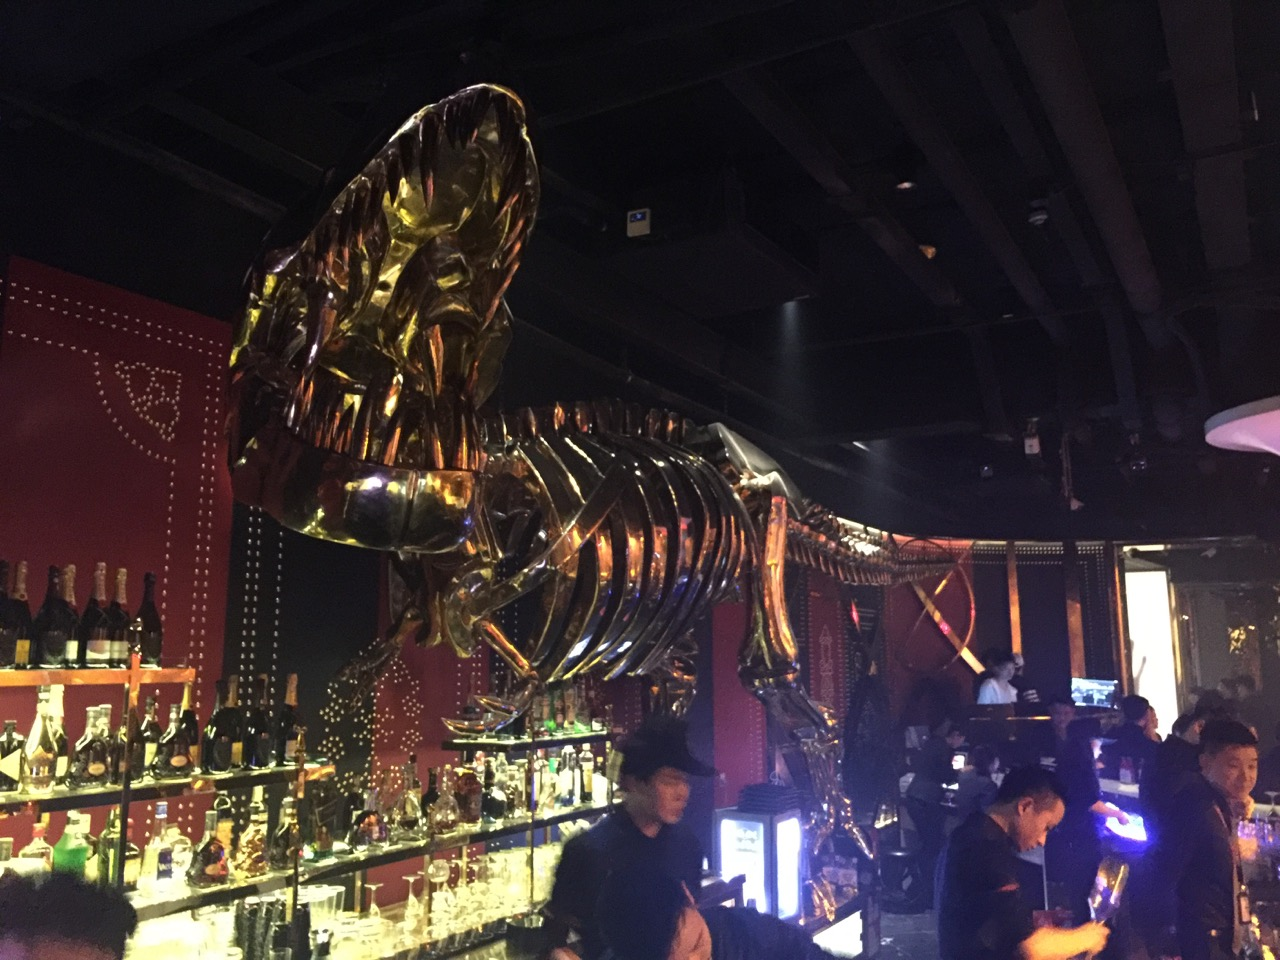 A chrome dinosaur haunts the bar at Mix club in Gongti